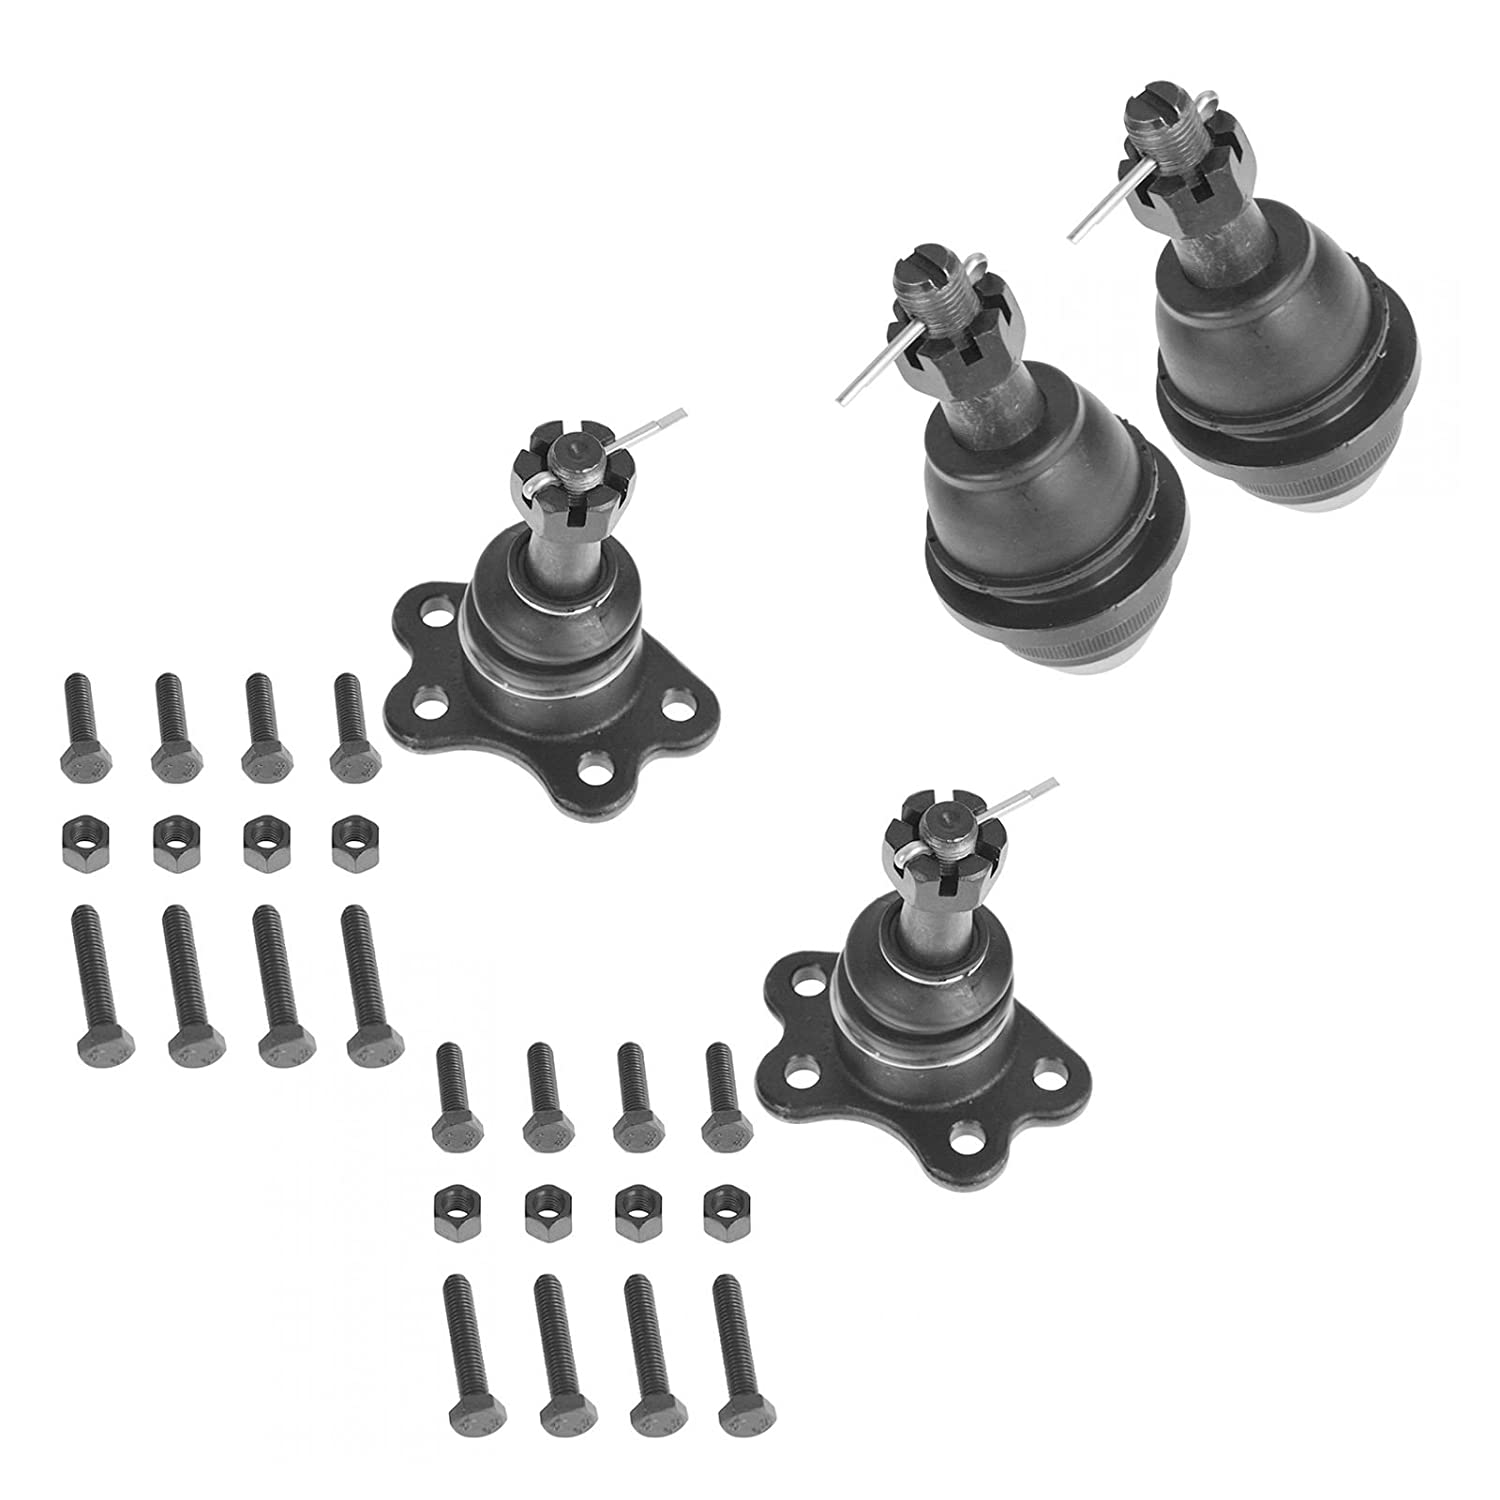 Ball Joint Upper Lower Kit Set of 4 for Chevy GMC Pickup Truck SUV AM Autoparts